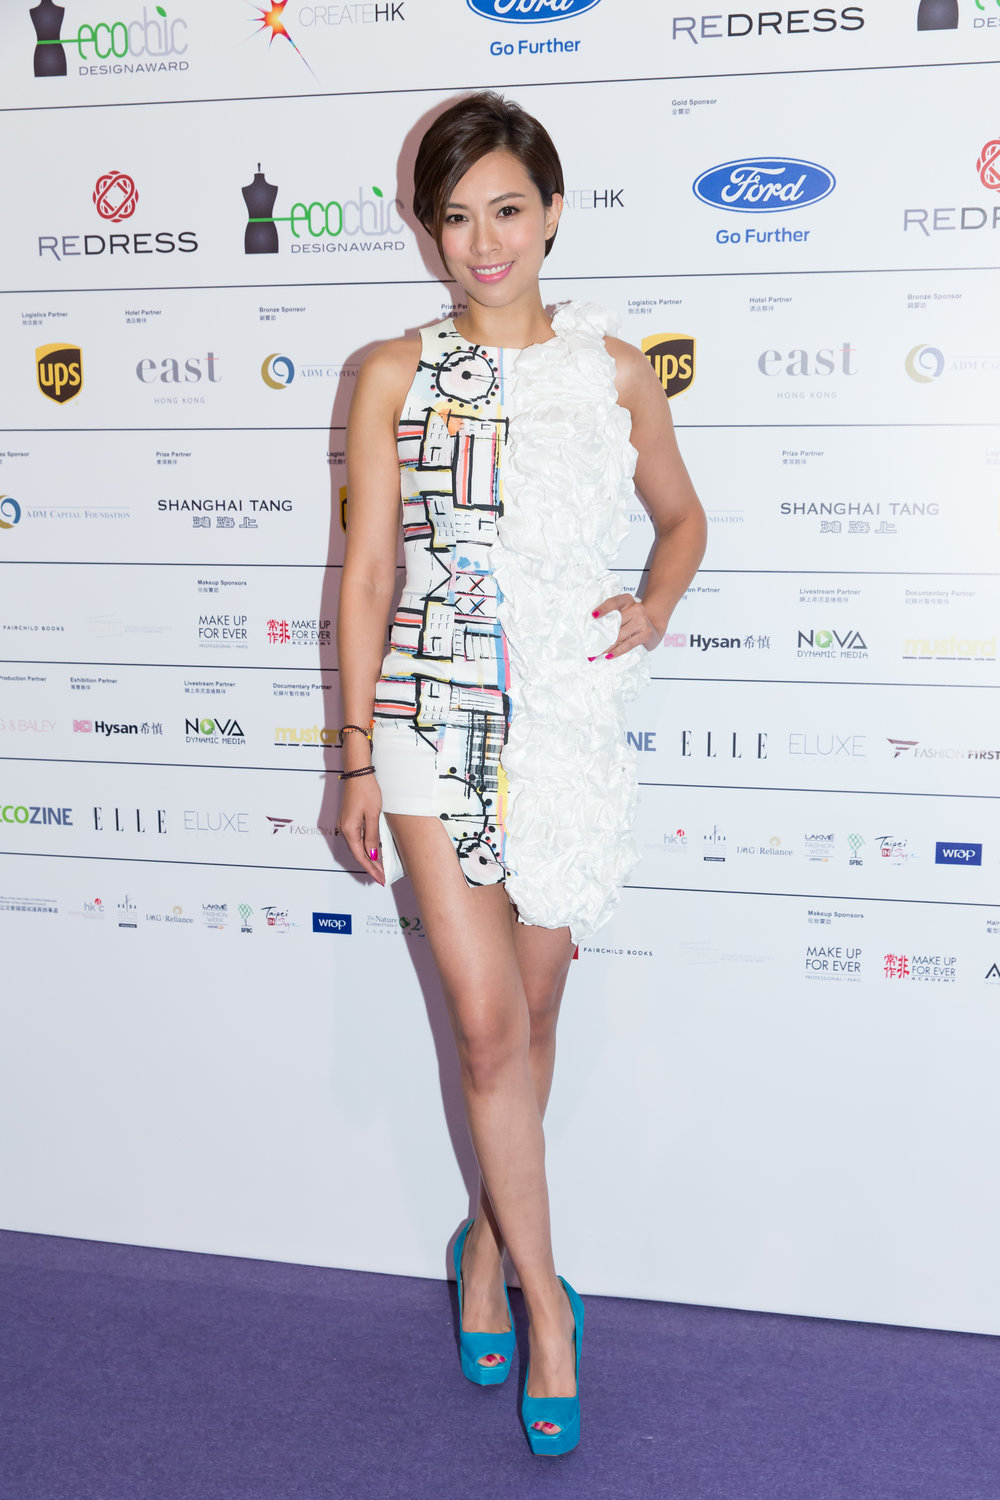 Hong Kong actress Queenie Chu wears Angus Tsui to attend the EcoChic Design Award 2015/16 Grand Final Show